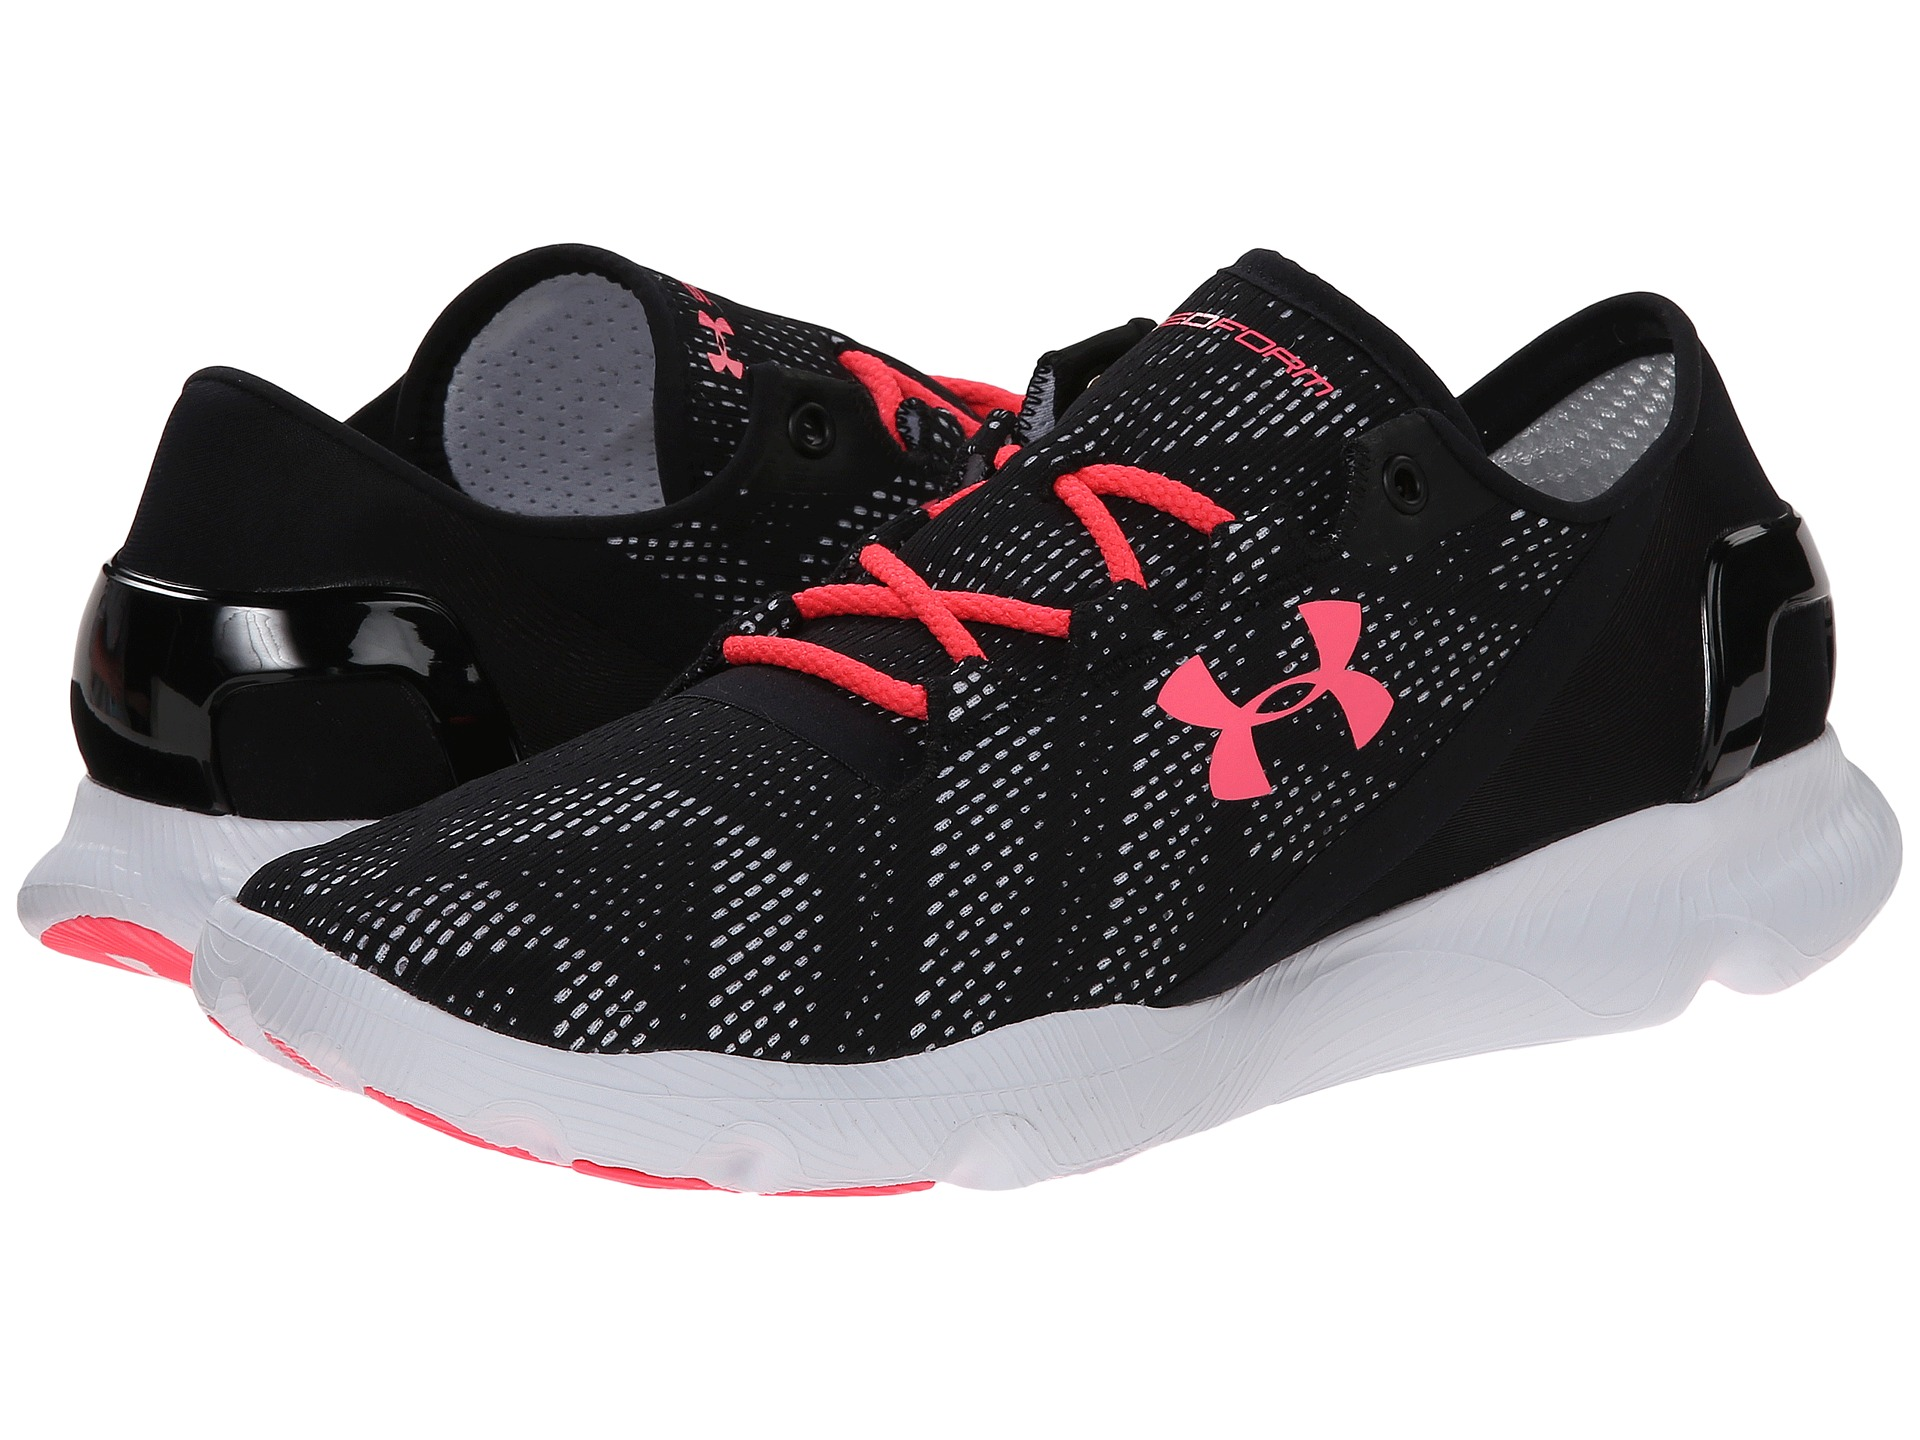 under armour ua speedform apollo vent free shipping both ways. Black Bedroom Furniture Sets. Home Design Ideas